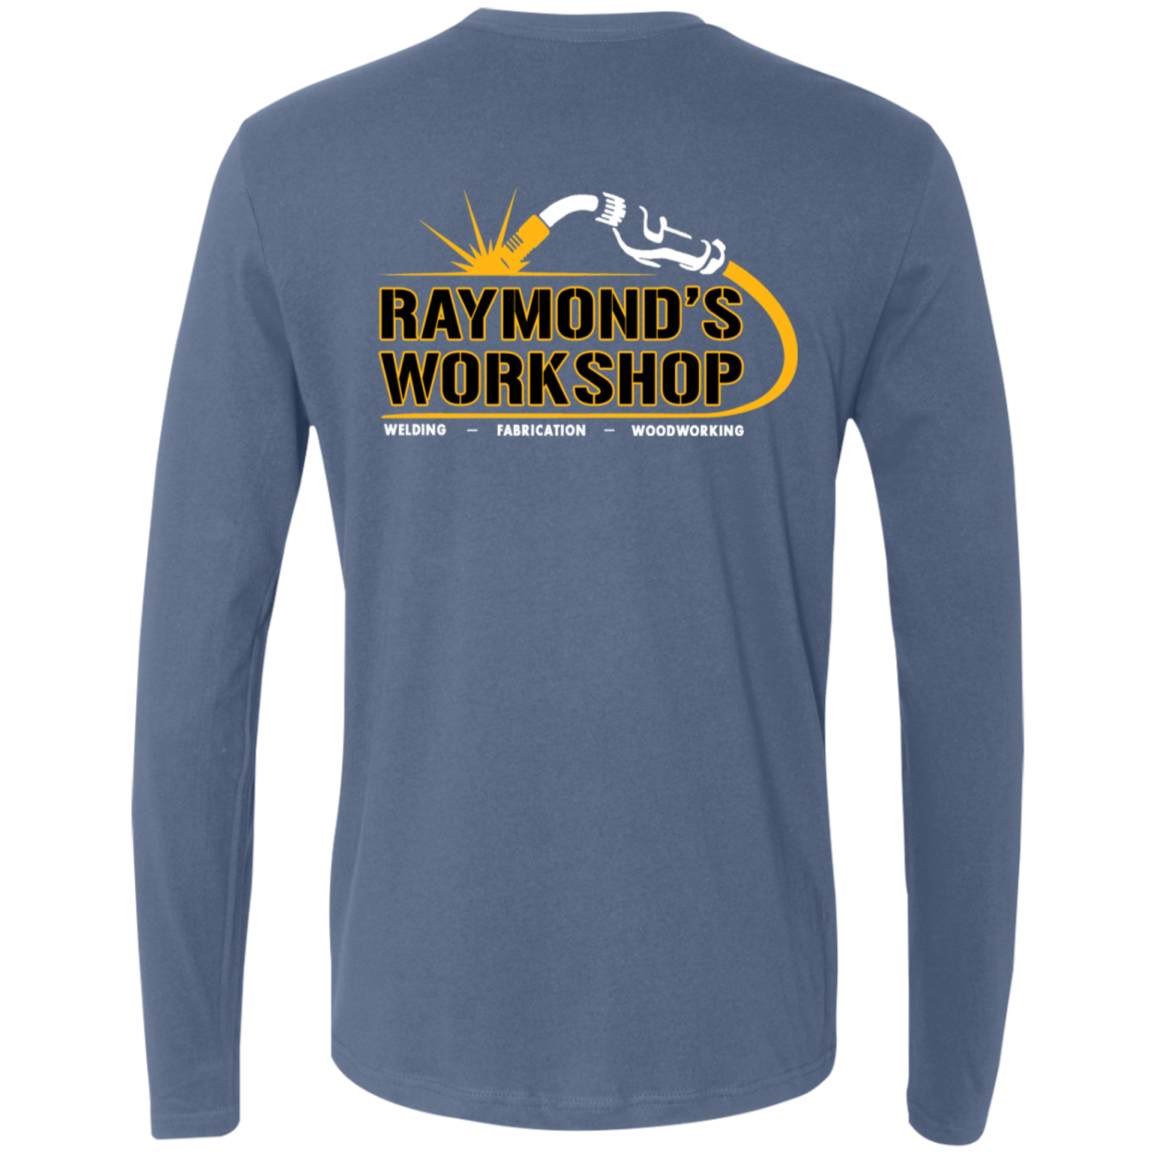 Raymond's Workshop Men's Premium LS